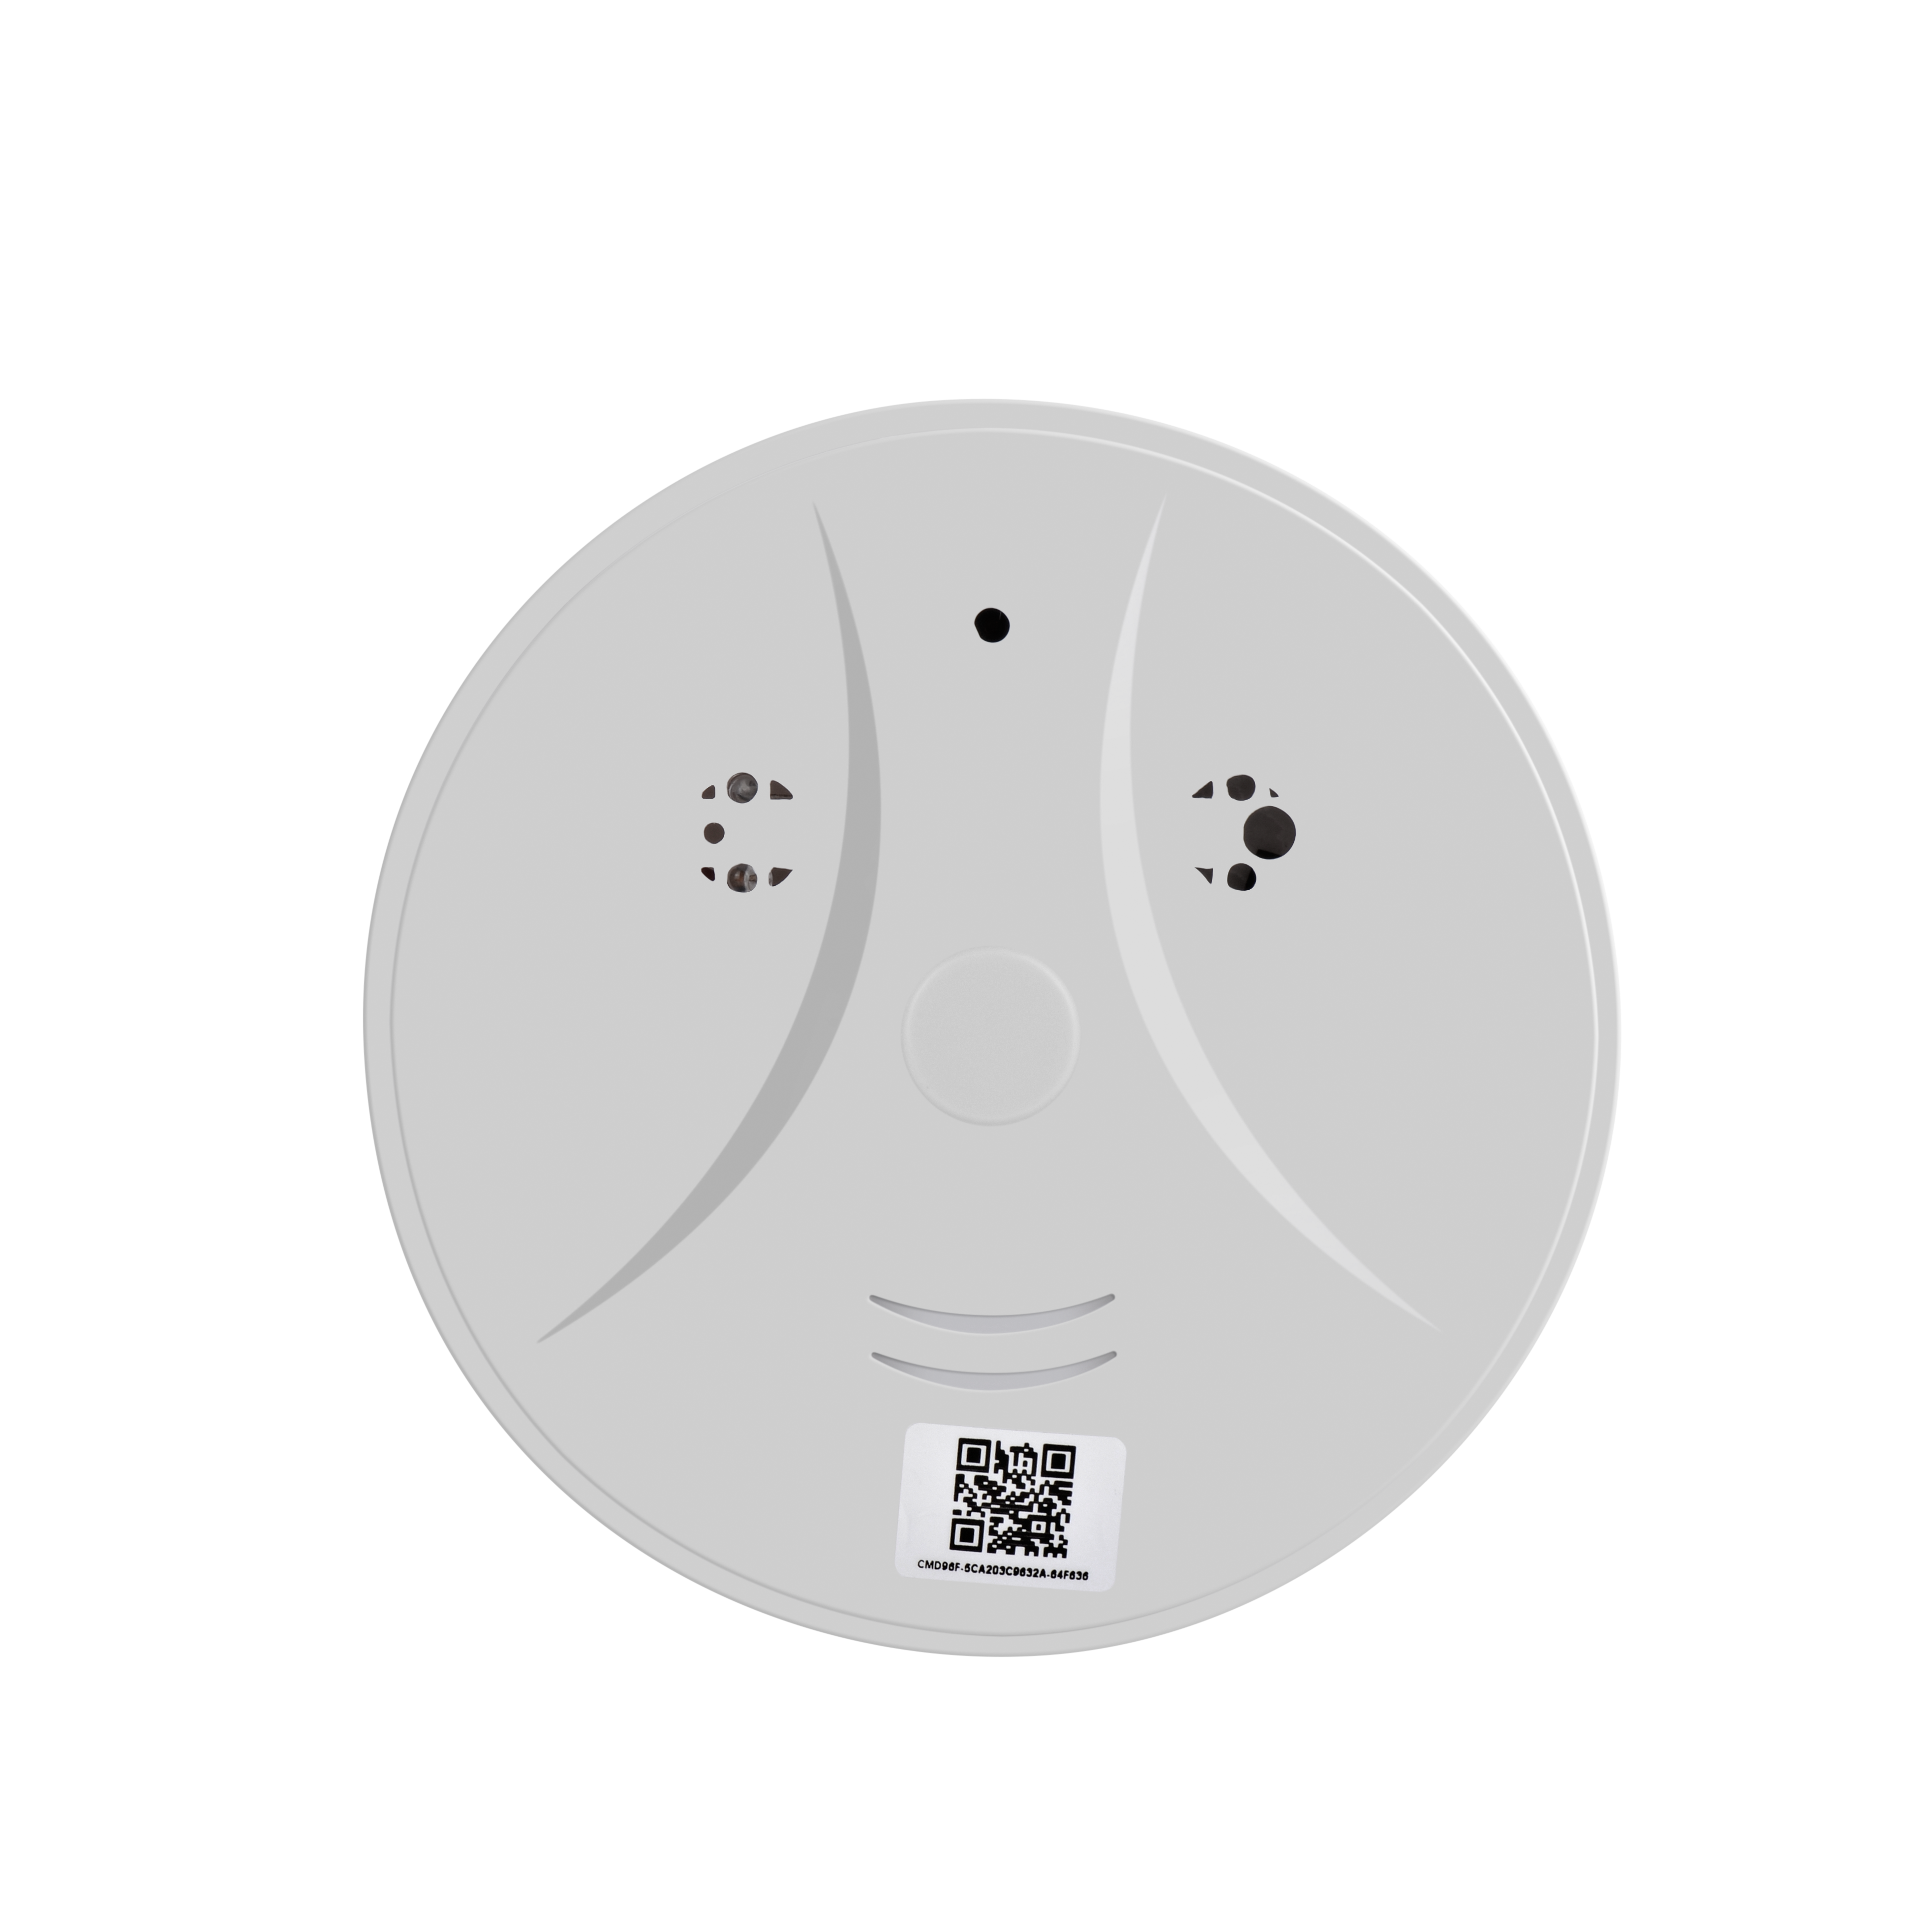 Wifi Smoke Detector Cameras 1080p P2p Hidden Camera Motion Detection Controlled And Viewed By Phone Those Cheating Bastards